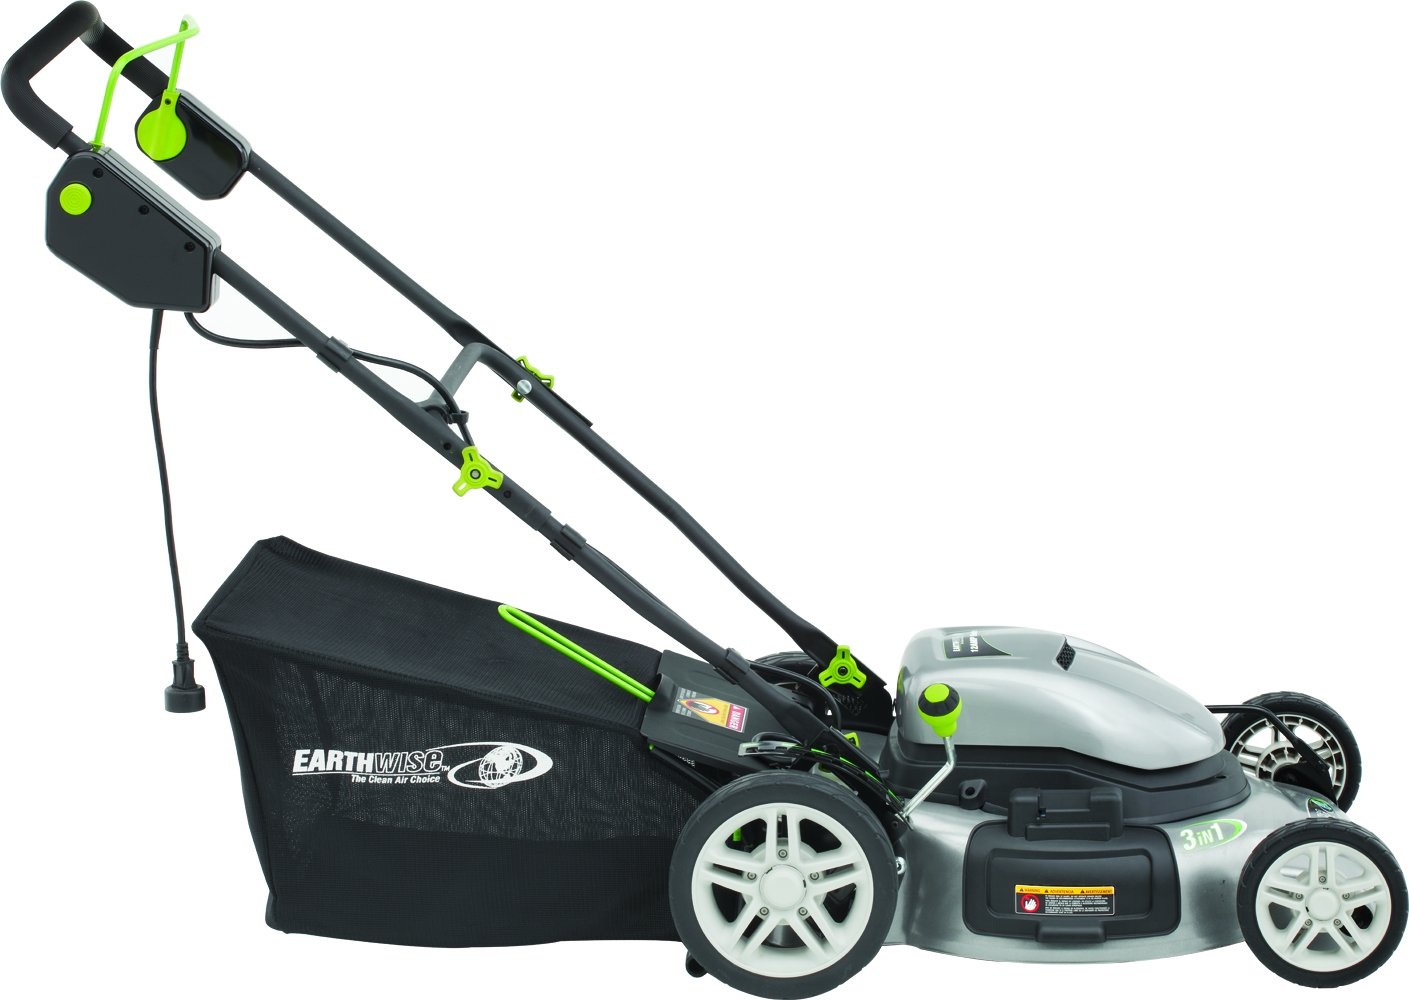 Electric Lawn Mower Sale Guide For Buying An Electric Lawn Mower